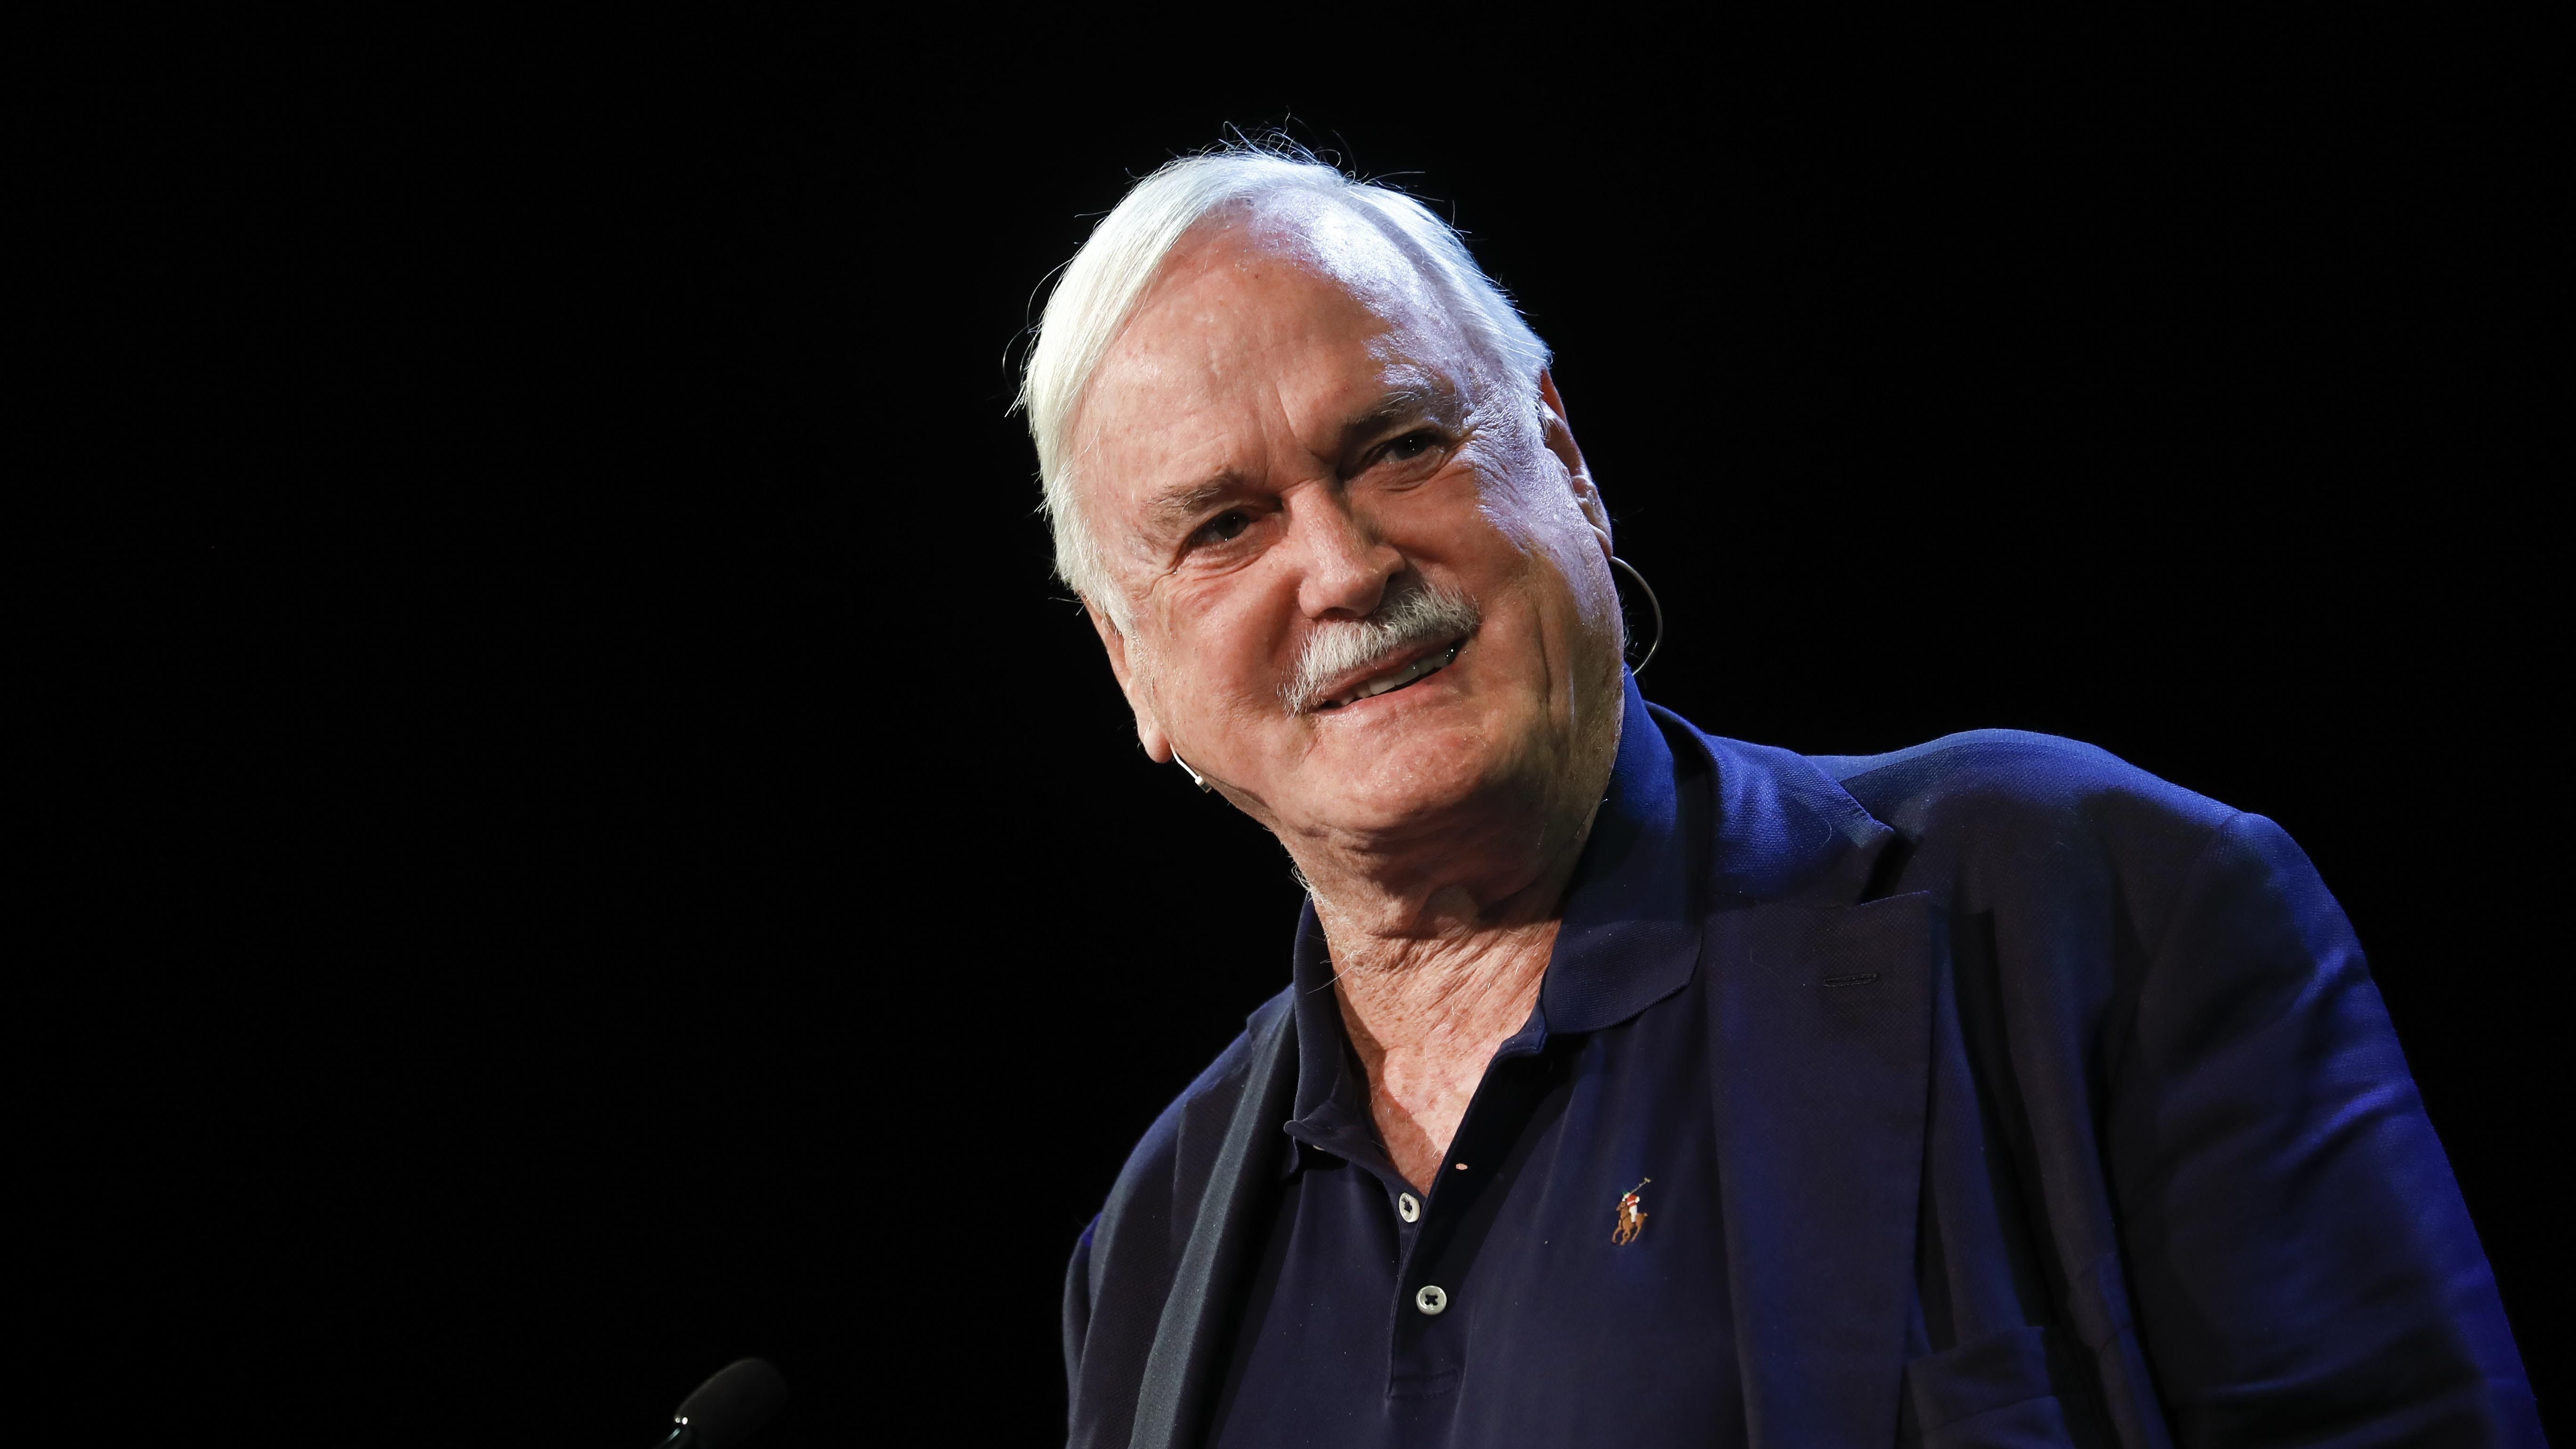 London's not English any more, says John Cleese in 'Basil Fawlty moment'